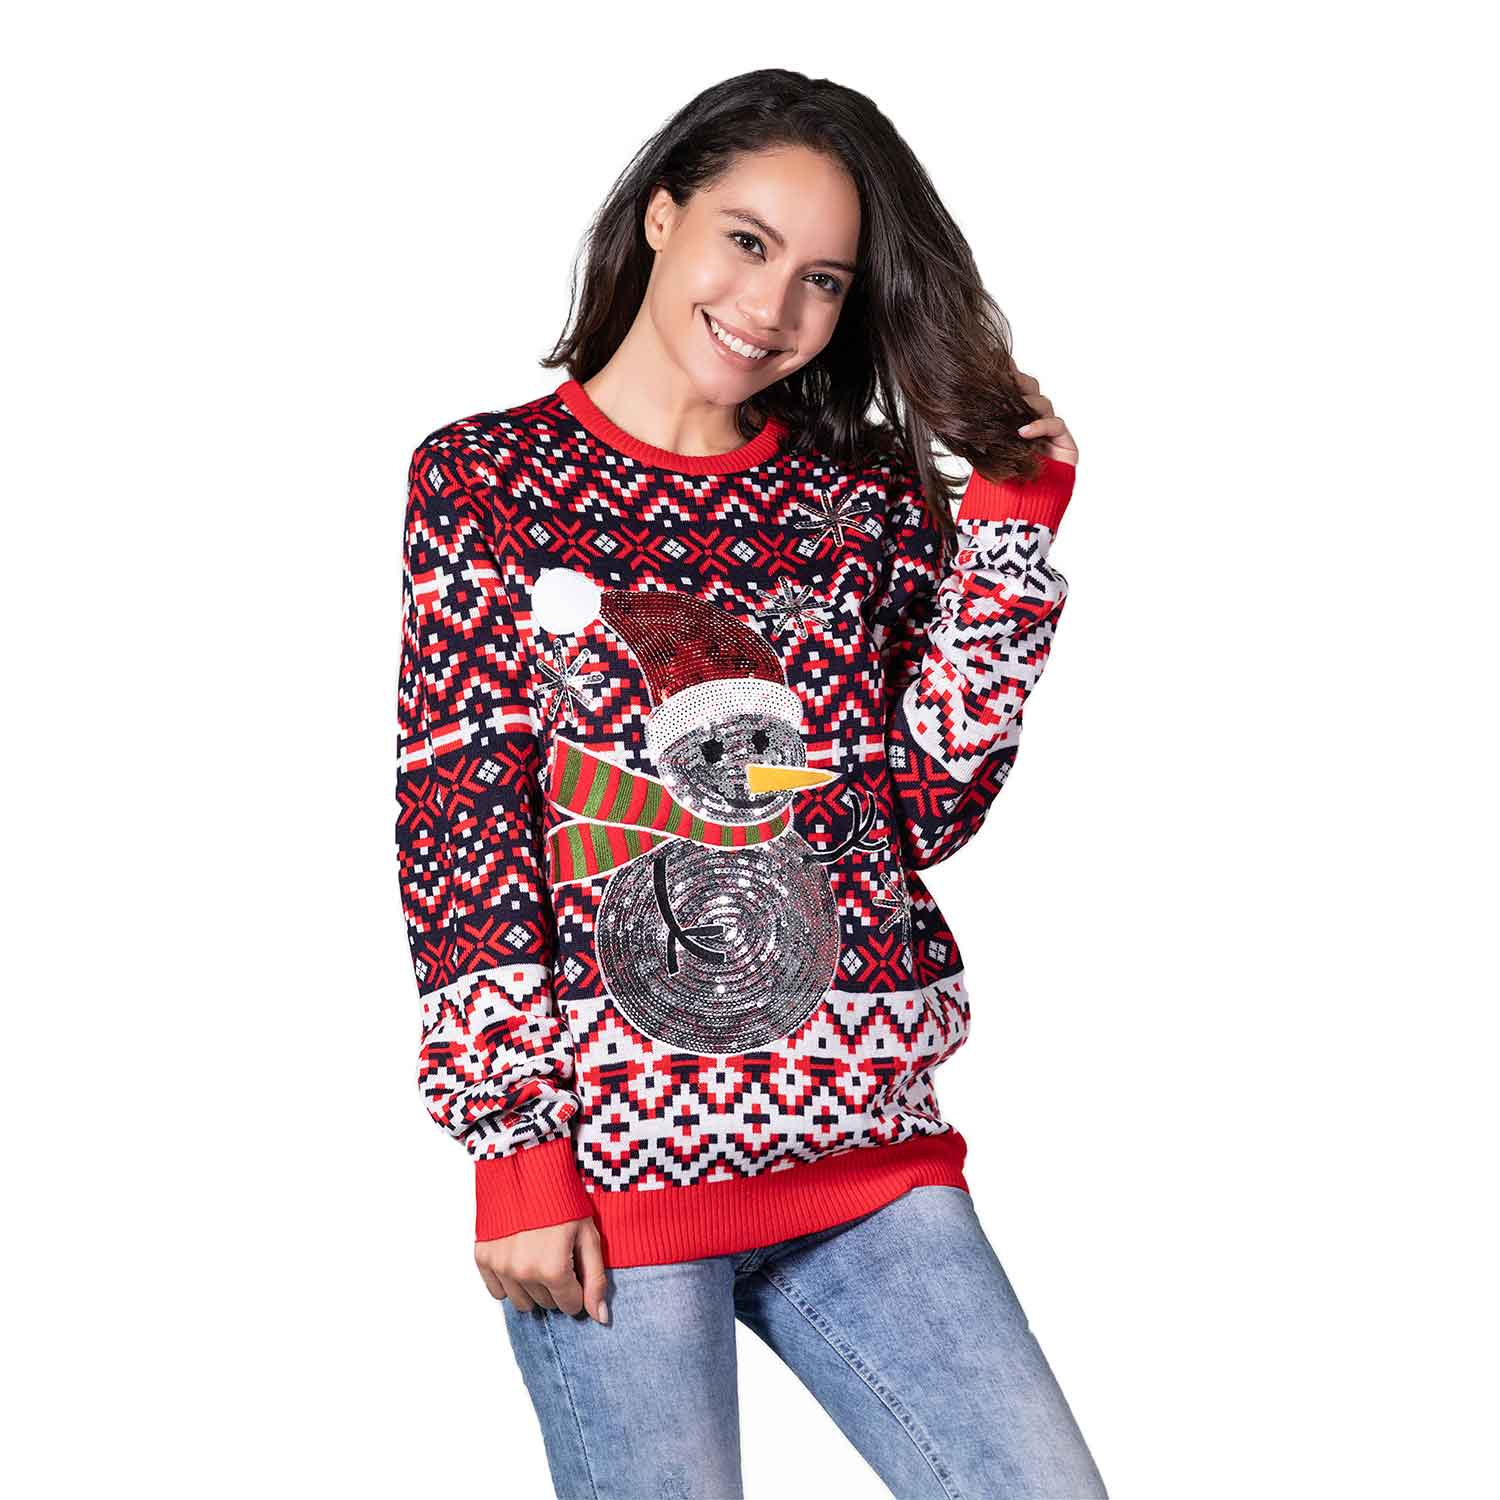 5b4e2f752d4 Go Snow Fabulous Women's Ugly Christmas Sweater